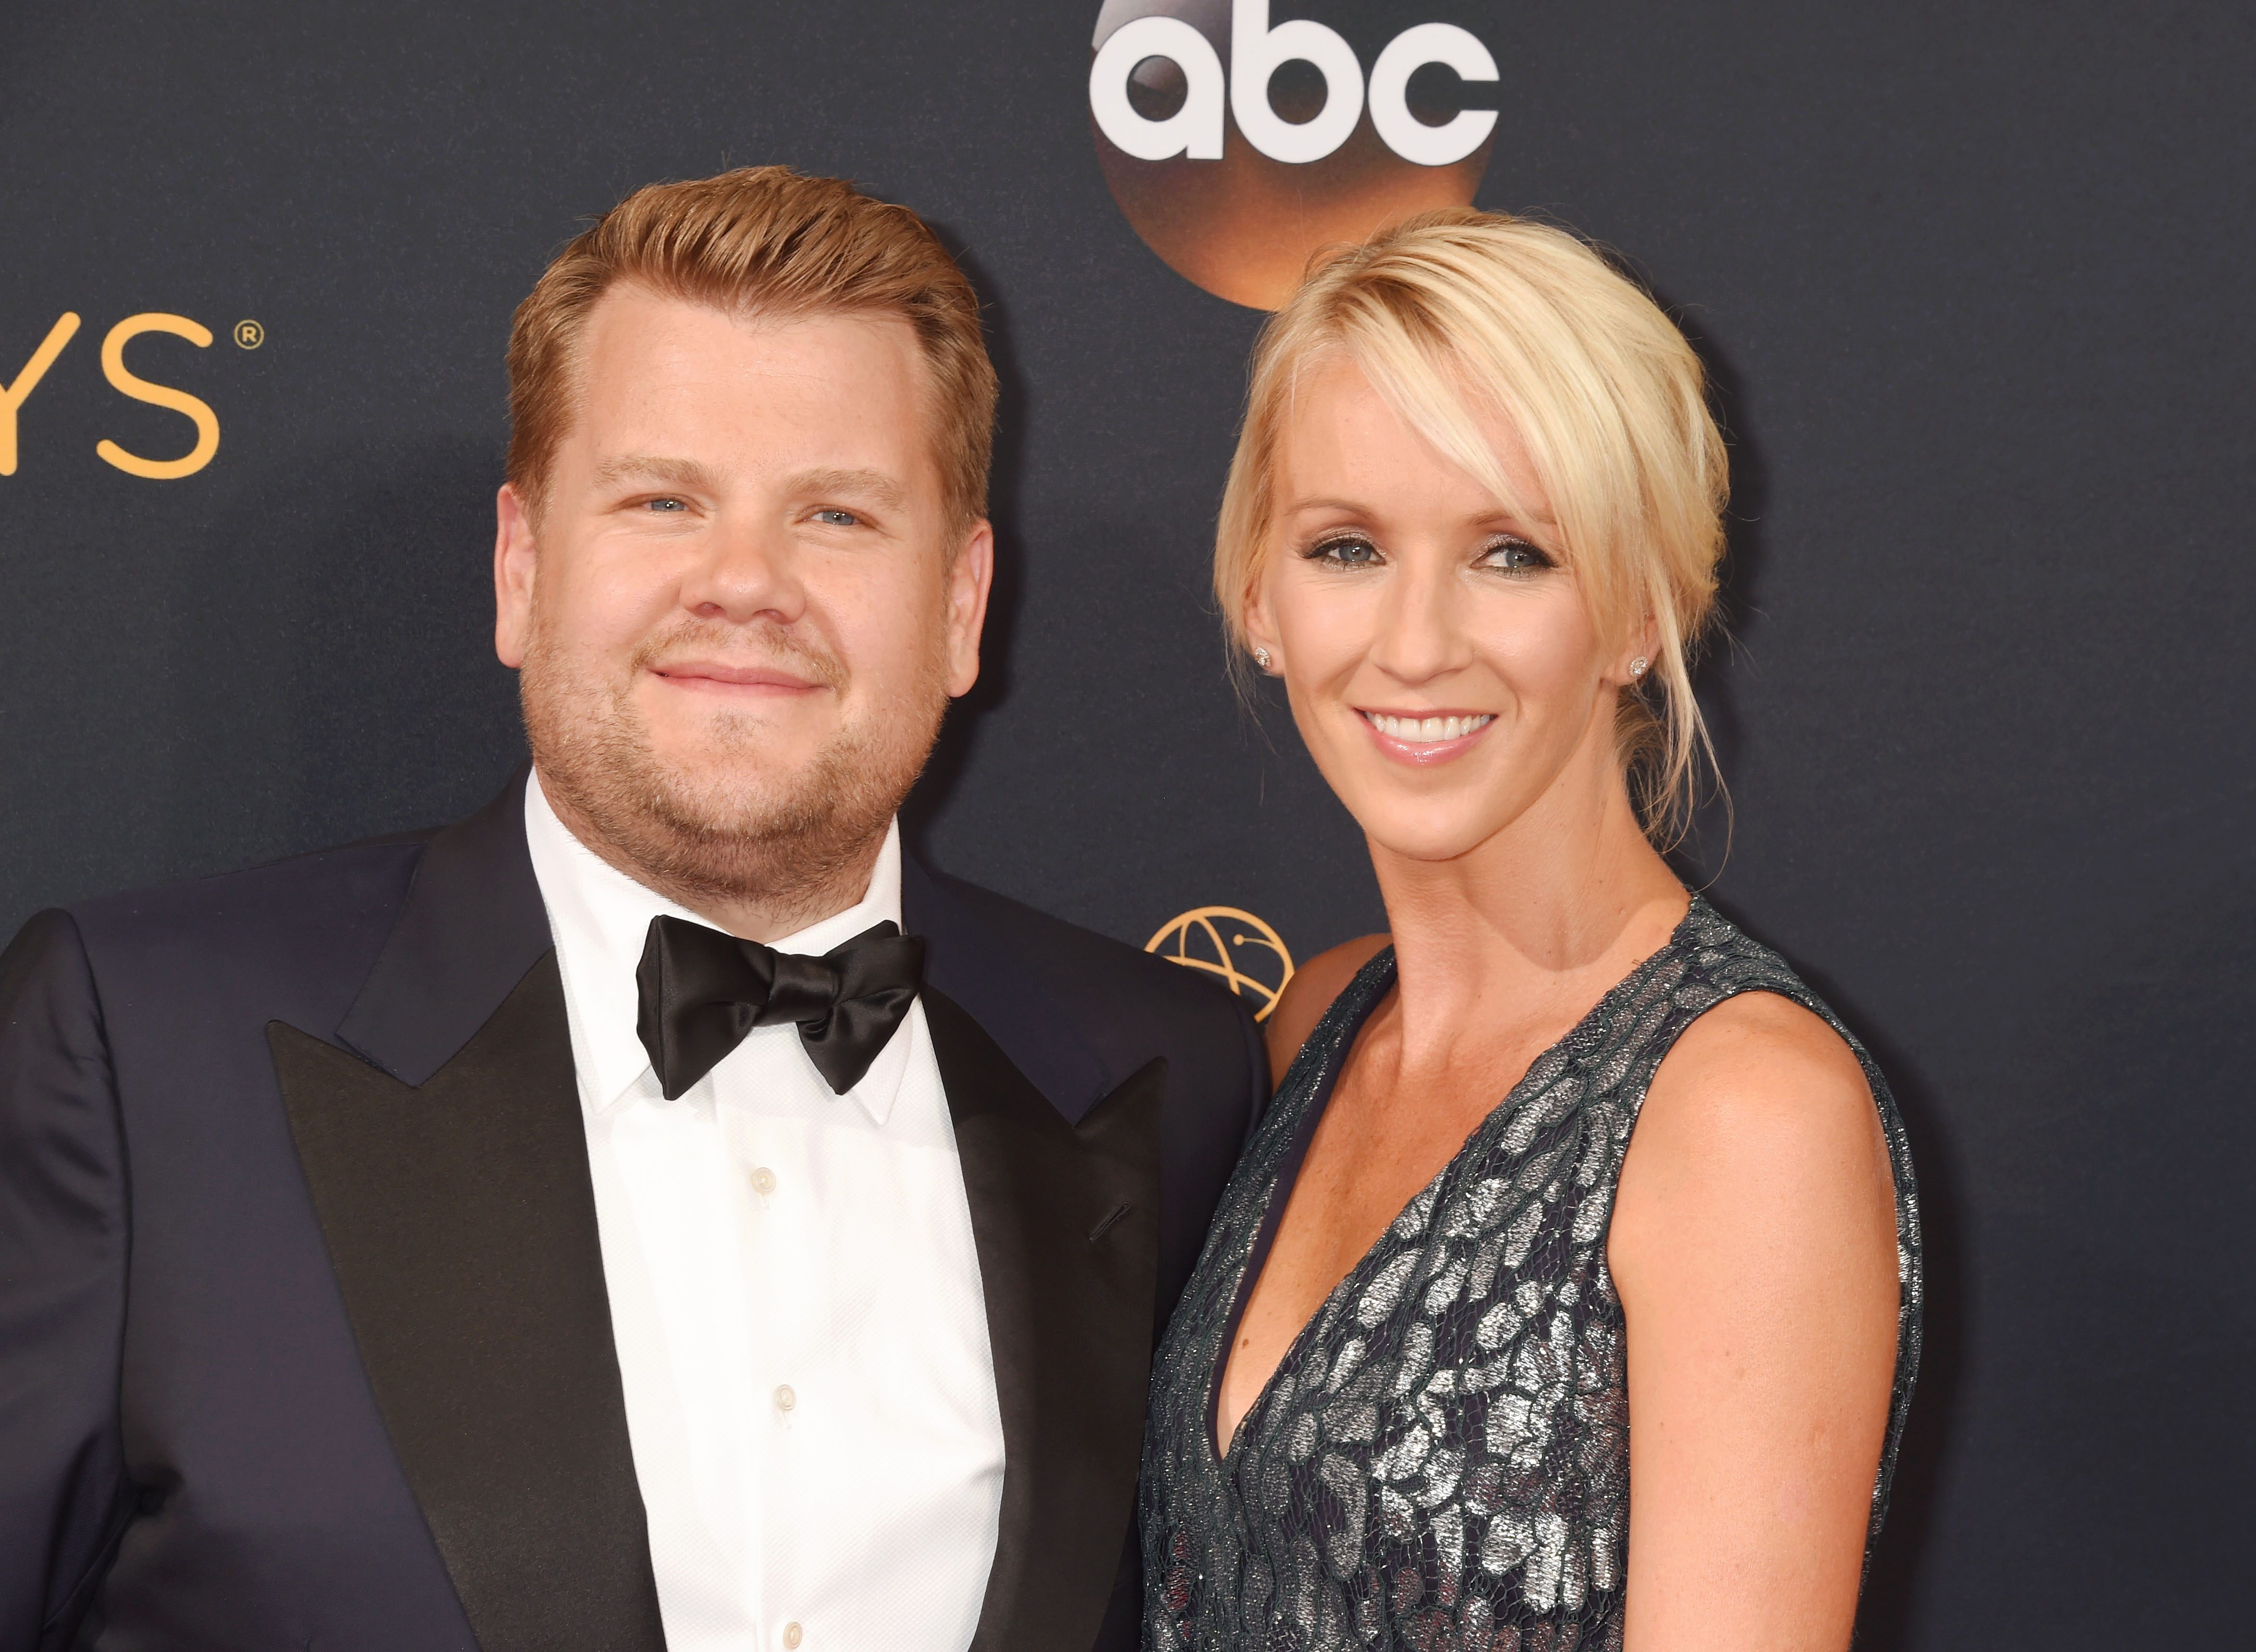 James Corden And Wife Julia Carey Welcome Baby Daughter GettyImages 608100758